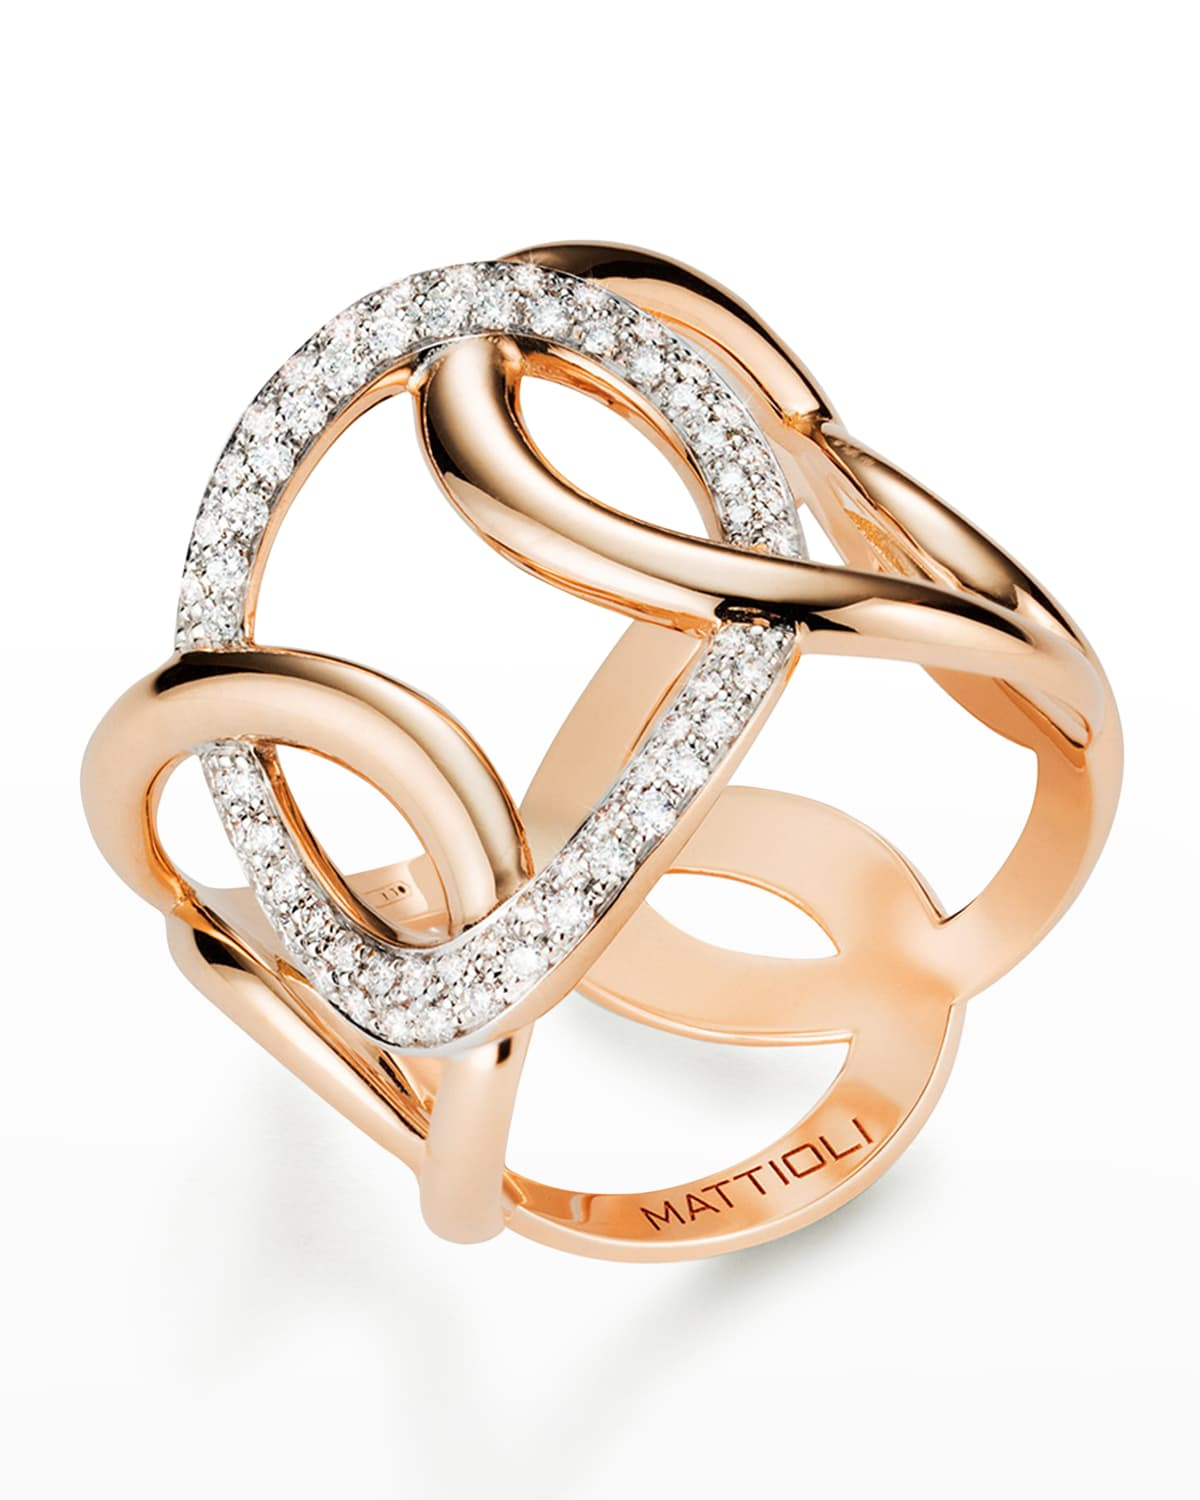 18K Rose Gold Hiroko Ring with Diamond Oval